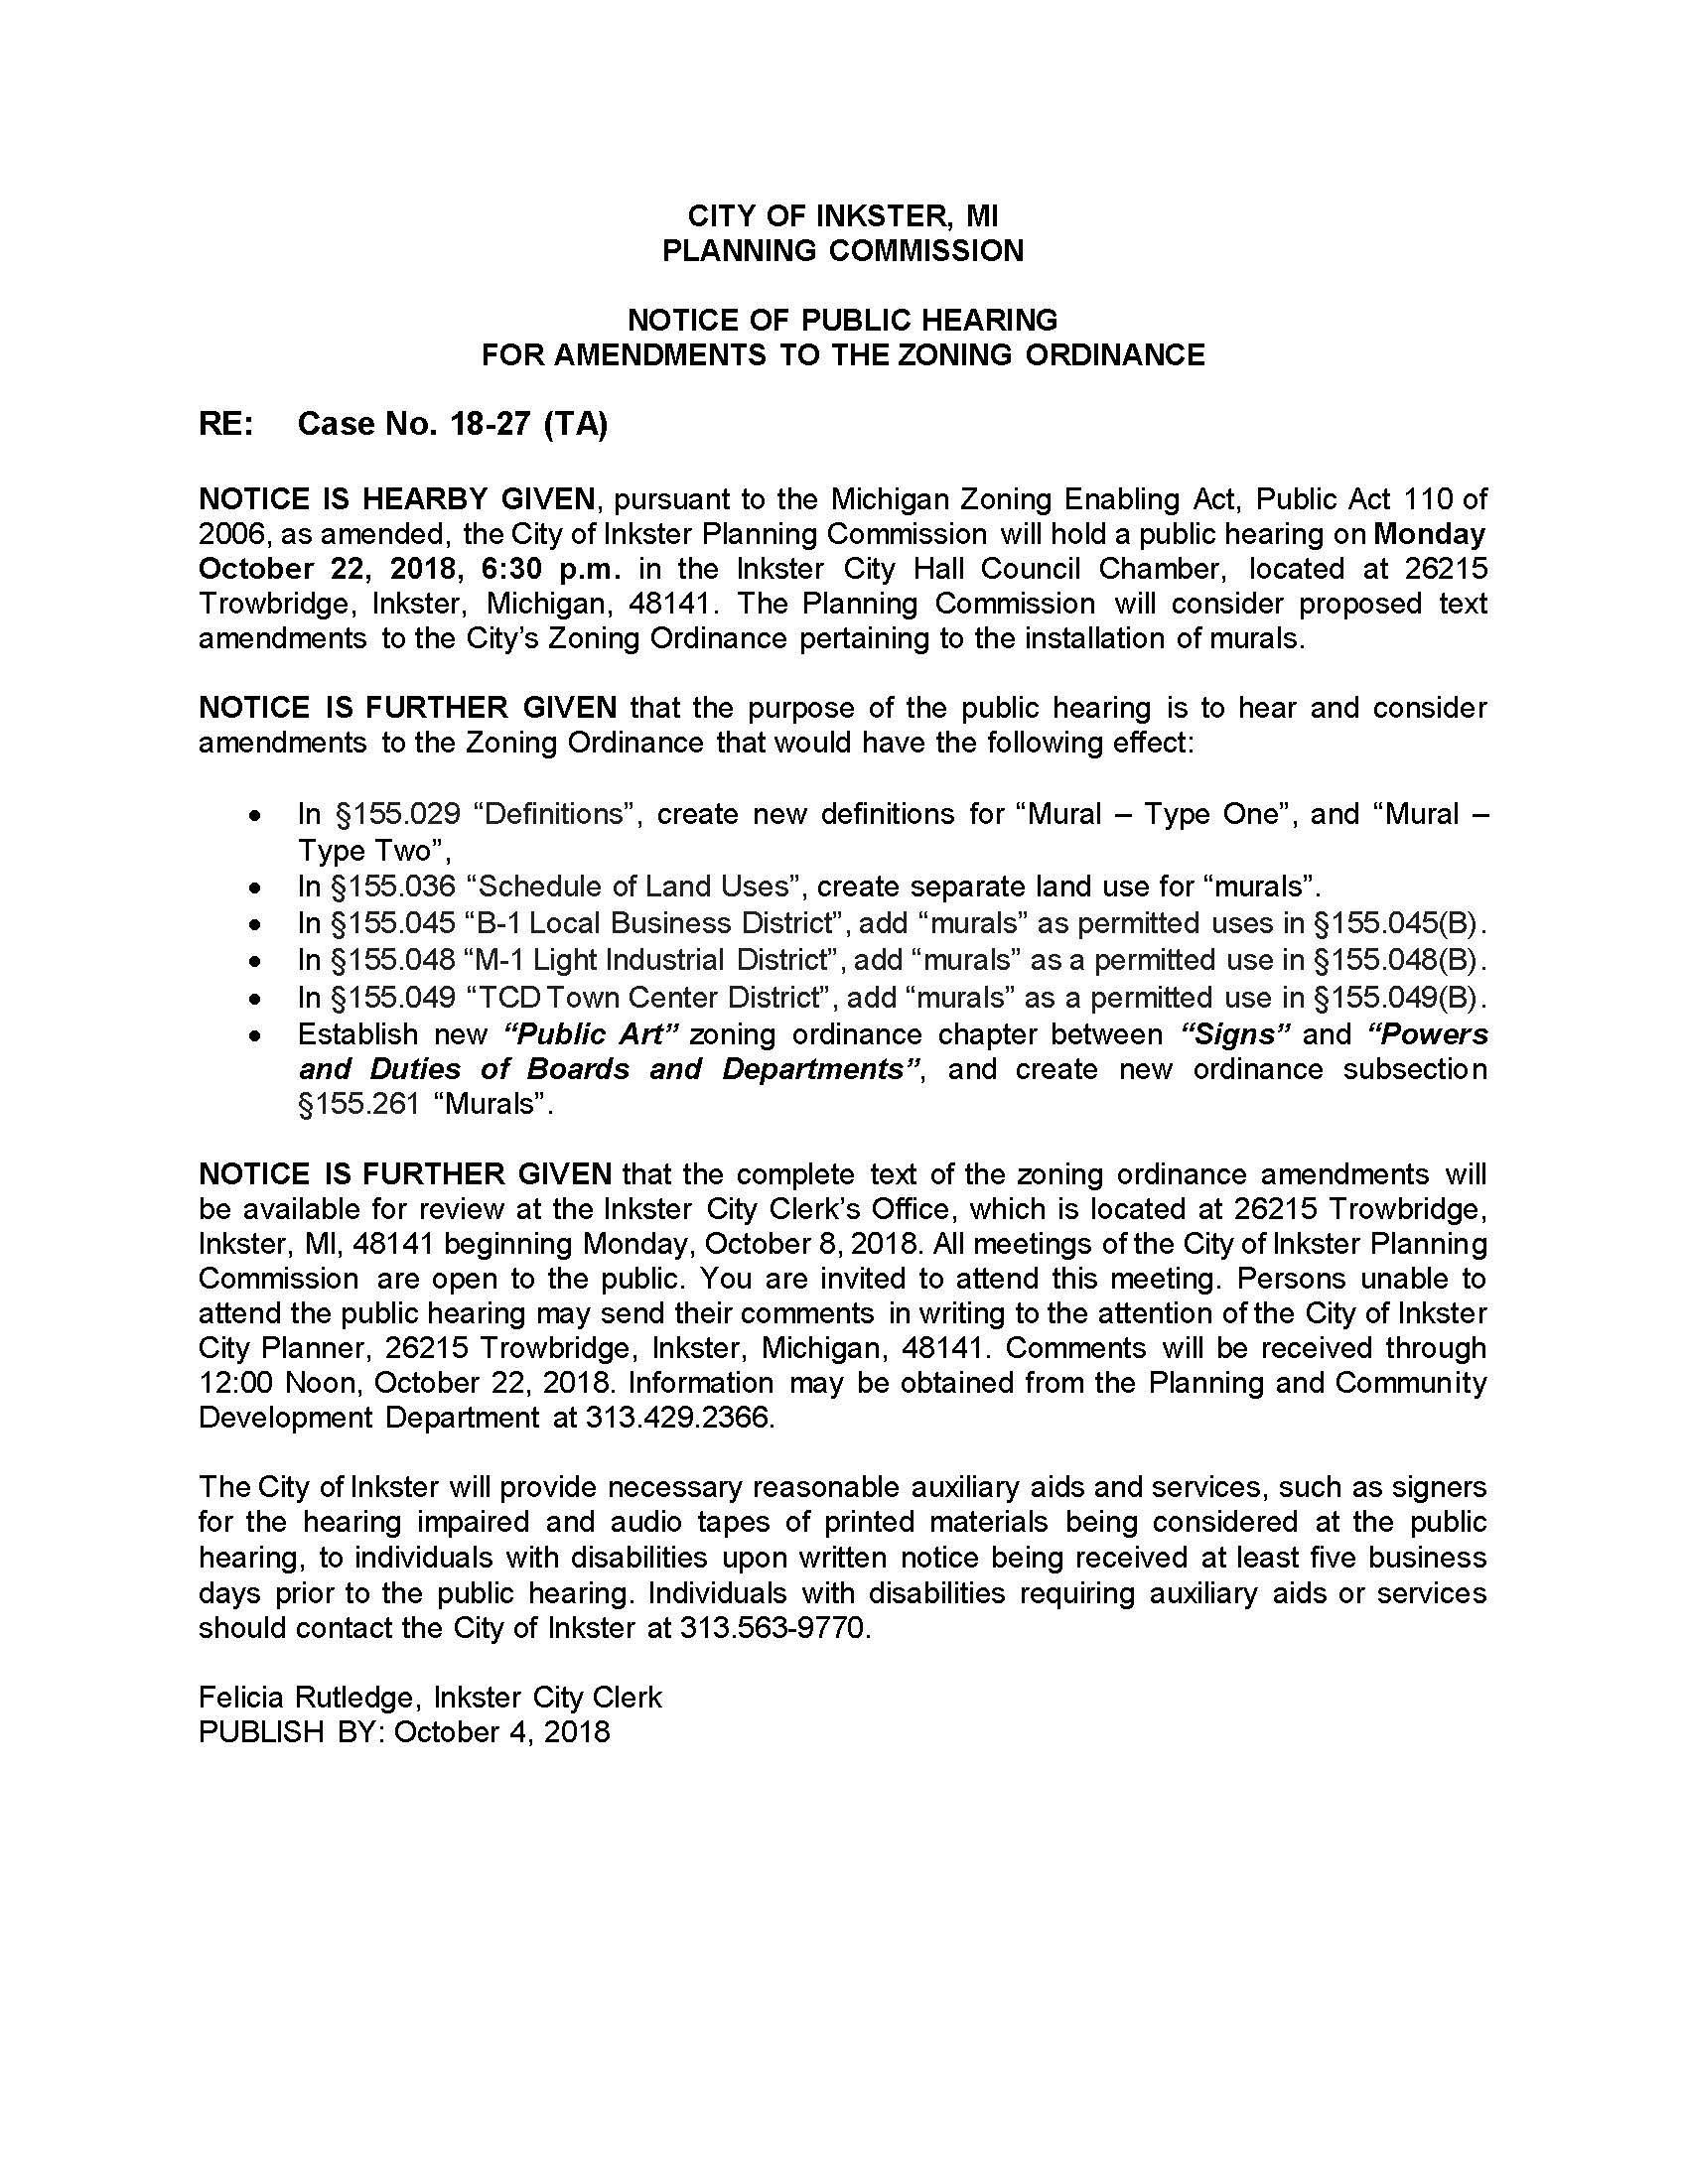 Public Hearing Notice TA 18-27 Zoning Amendments Murals